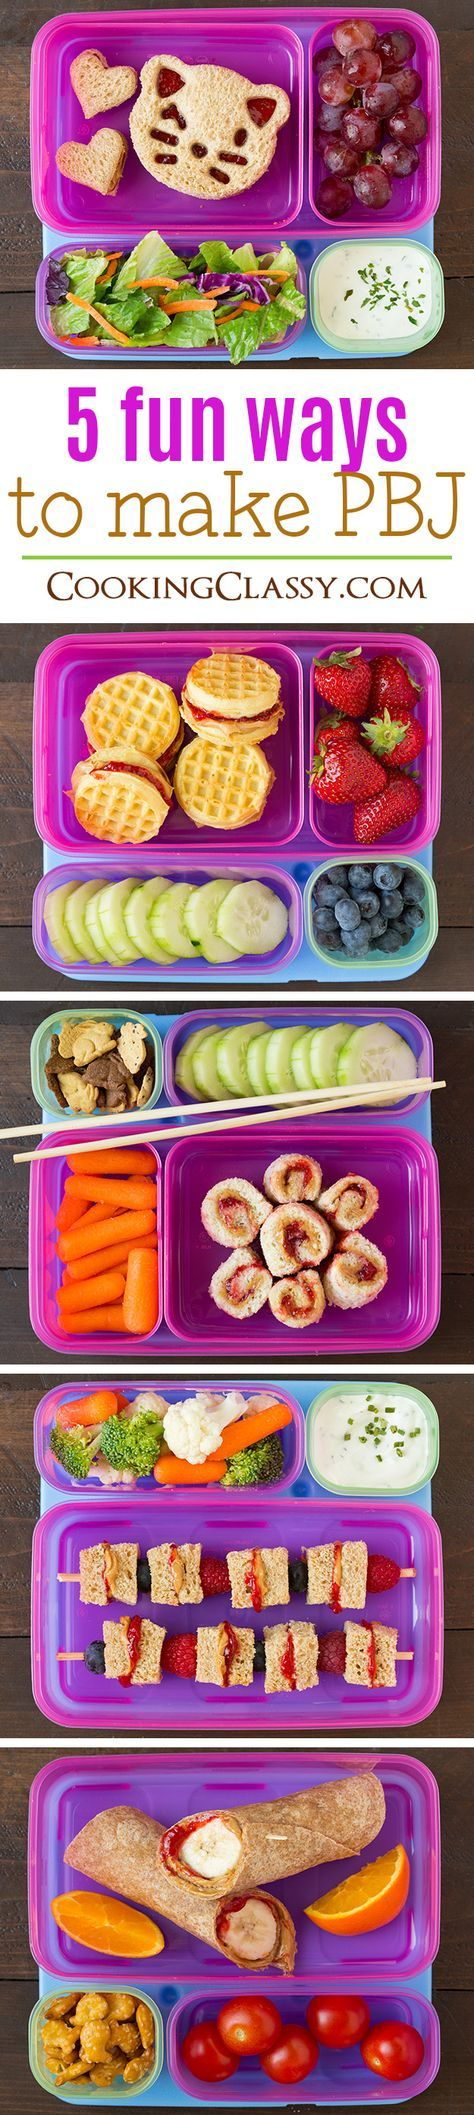 Five Fun Ways to Make a PBJ - my kids thought these were so fun! Perfect for school lunch ideas.